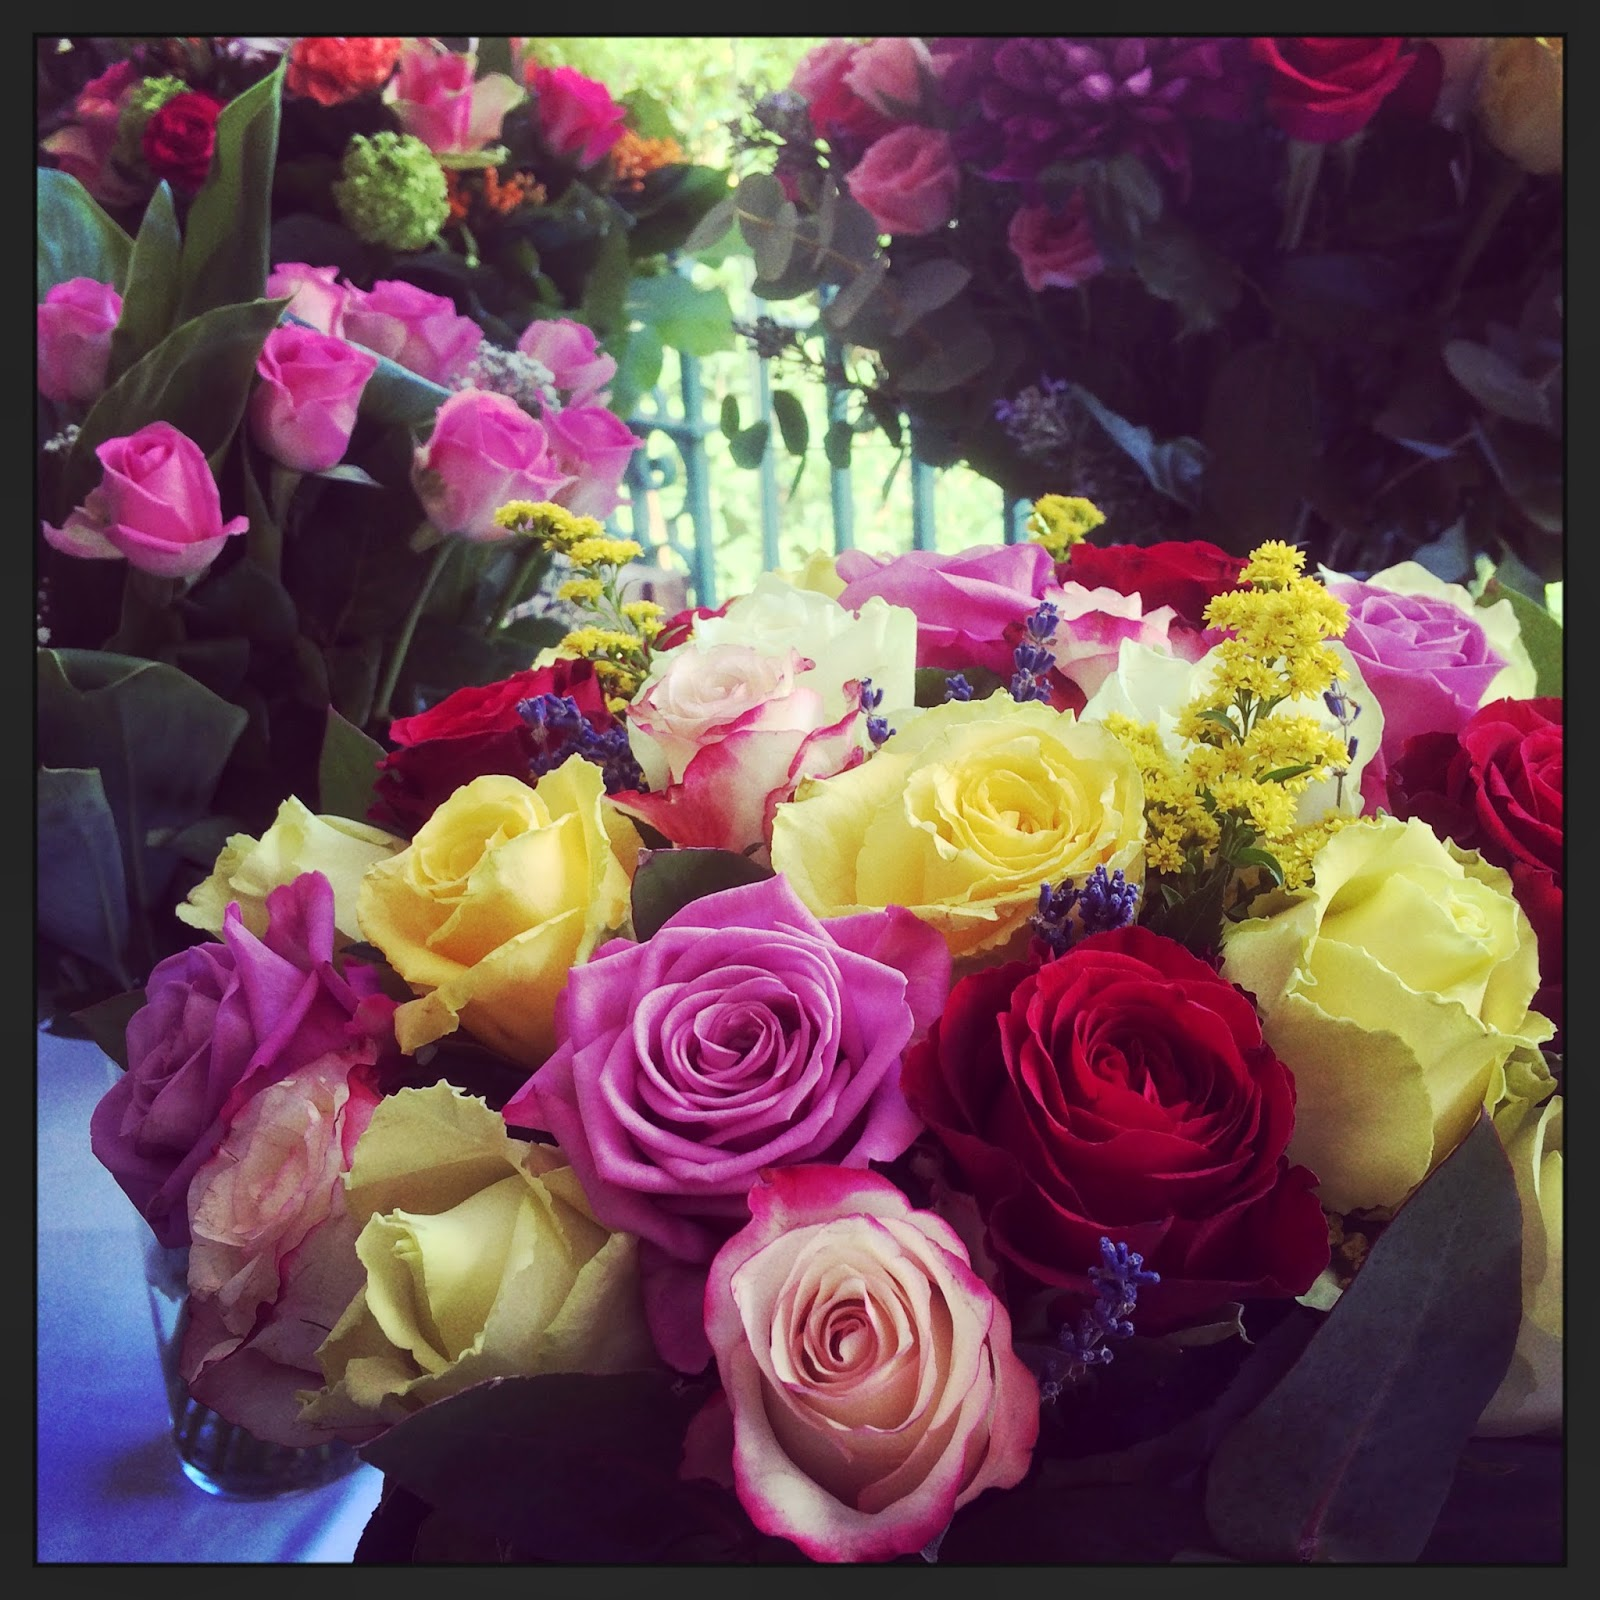 instagram pic of roses